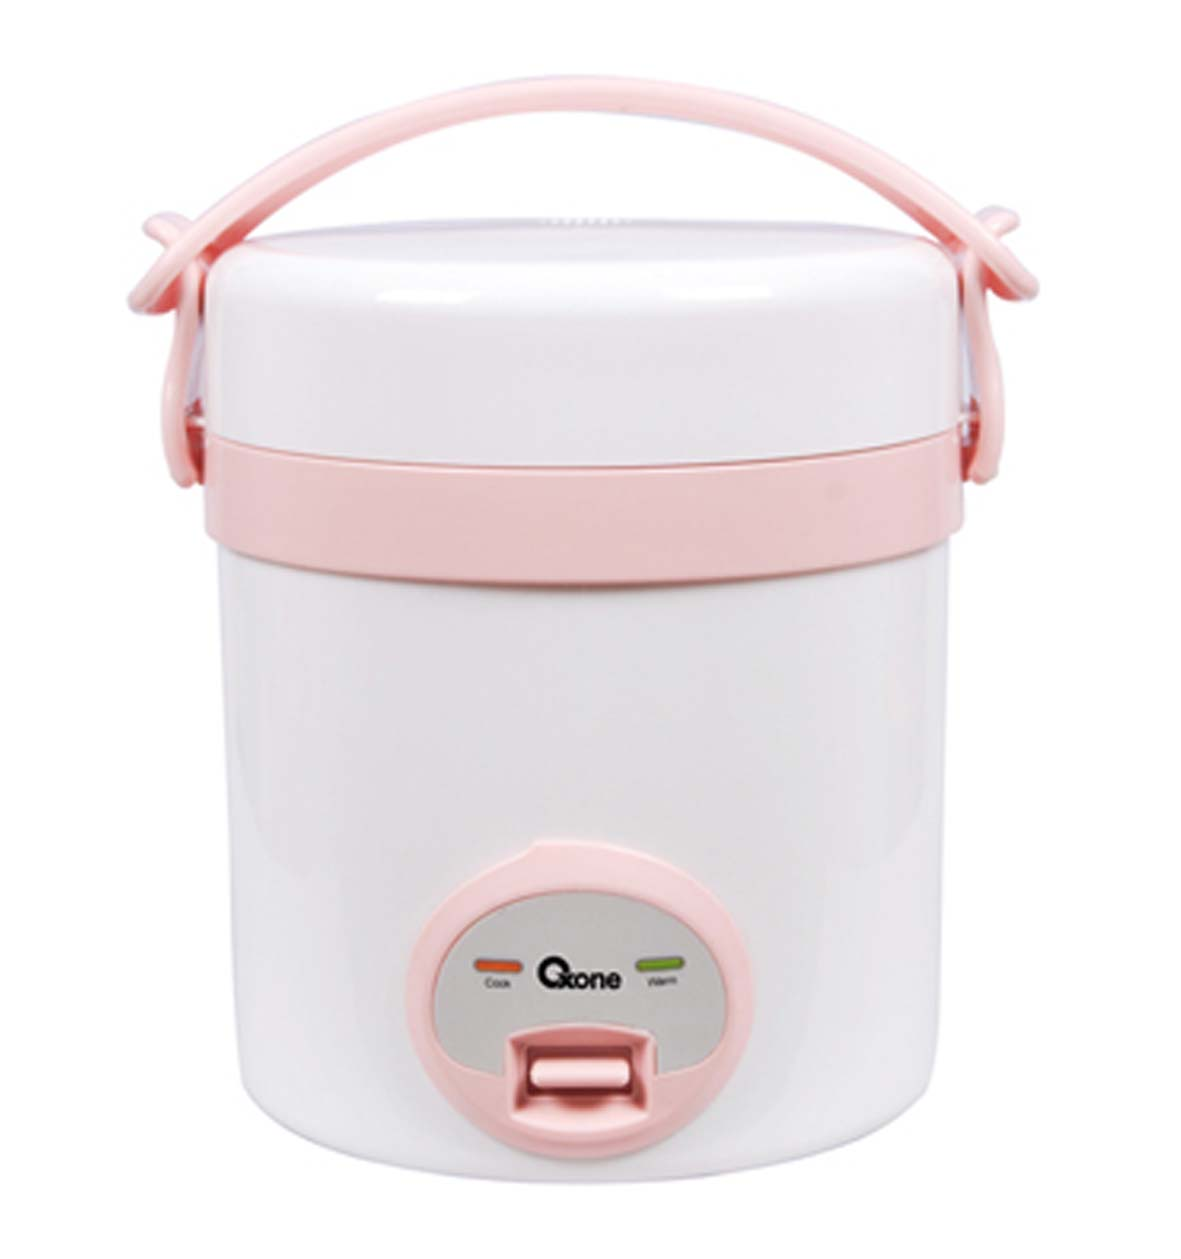 OX-182 | CUTE Rice Cooker Oxone 0.3 Lt - Pink title=